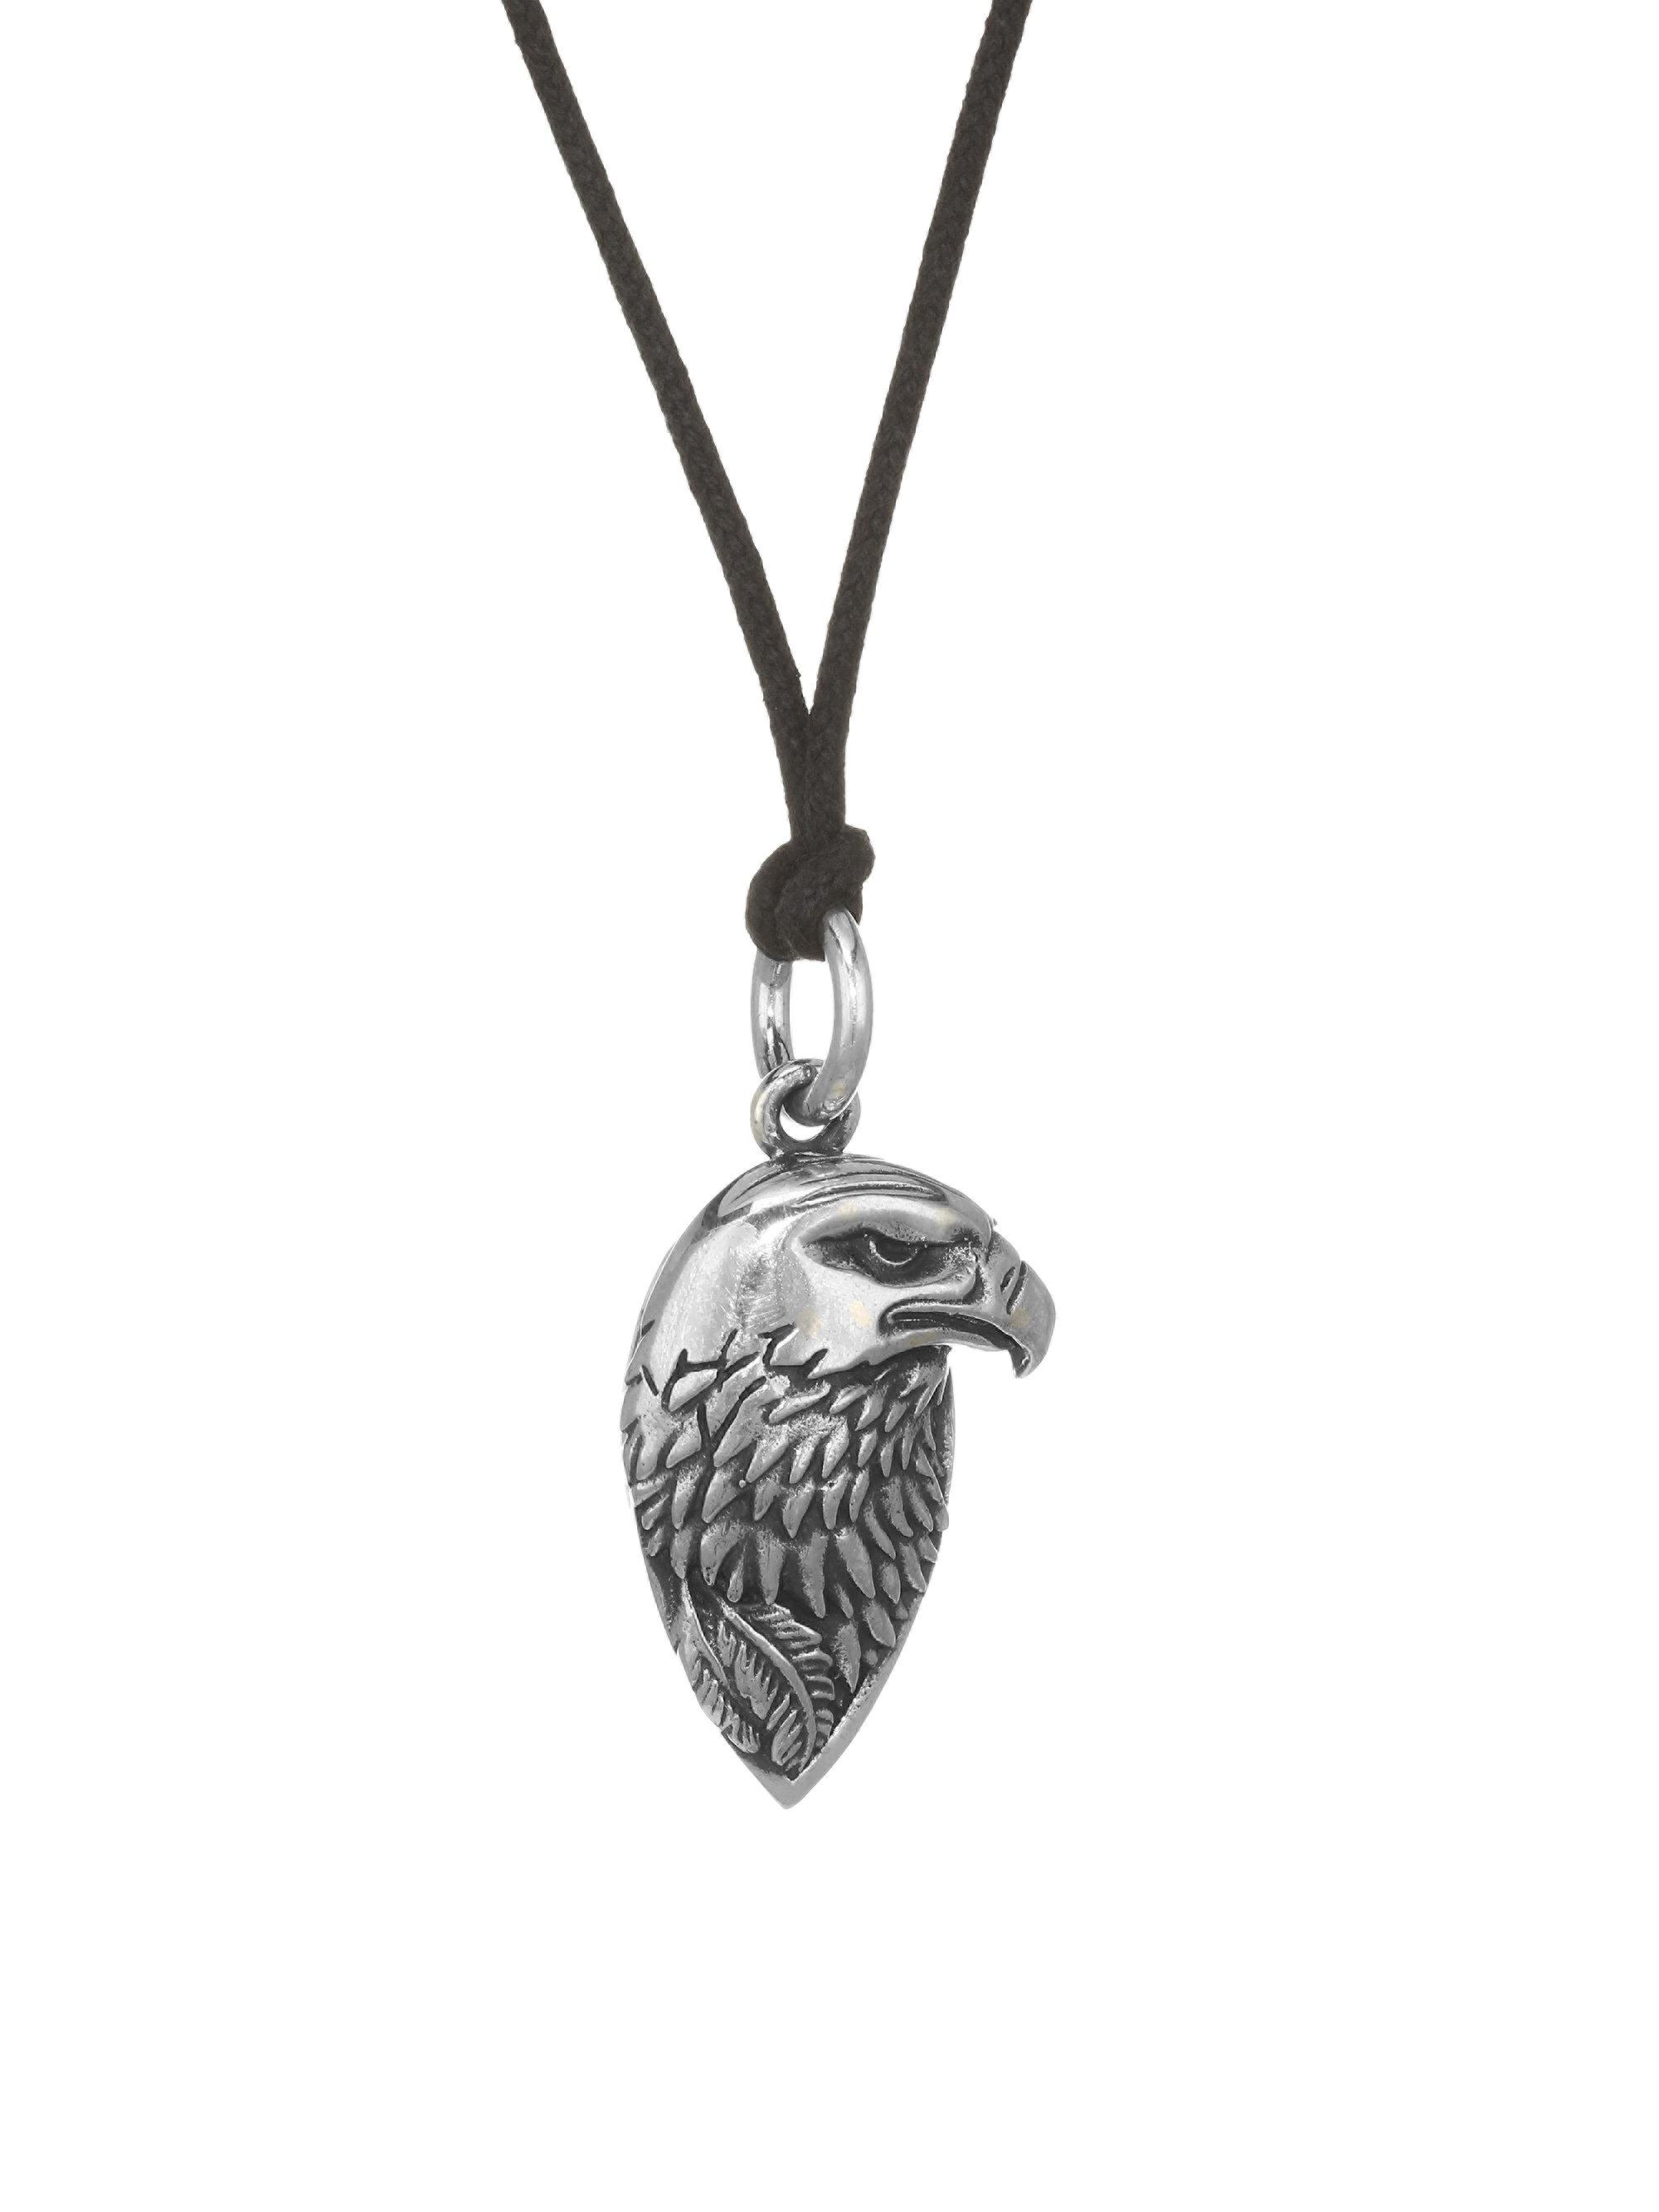 eagle background one pendant by stock depositphotos color jandix steel jewelry stainless photo